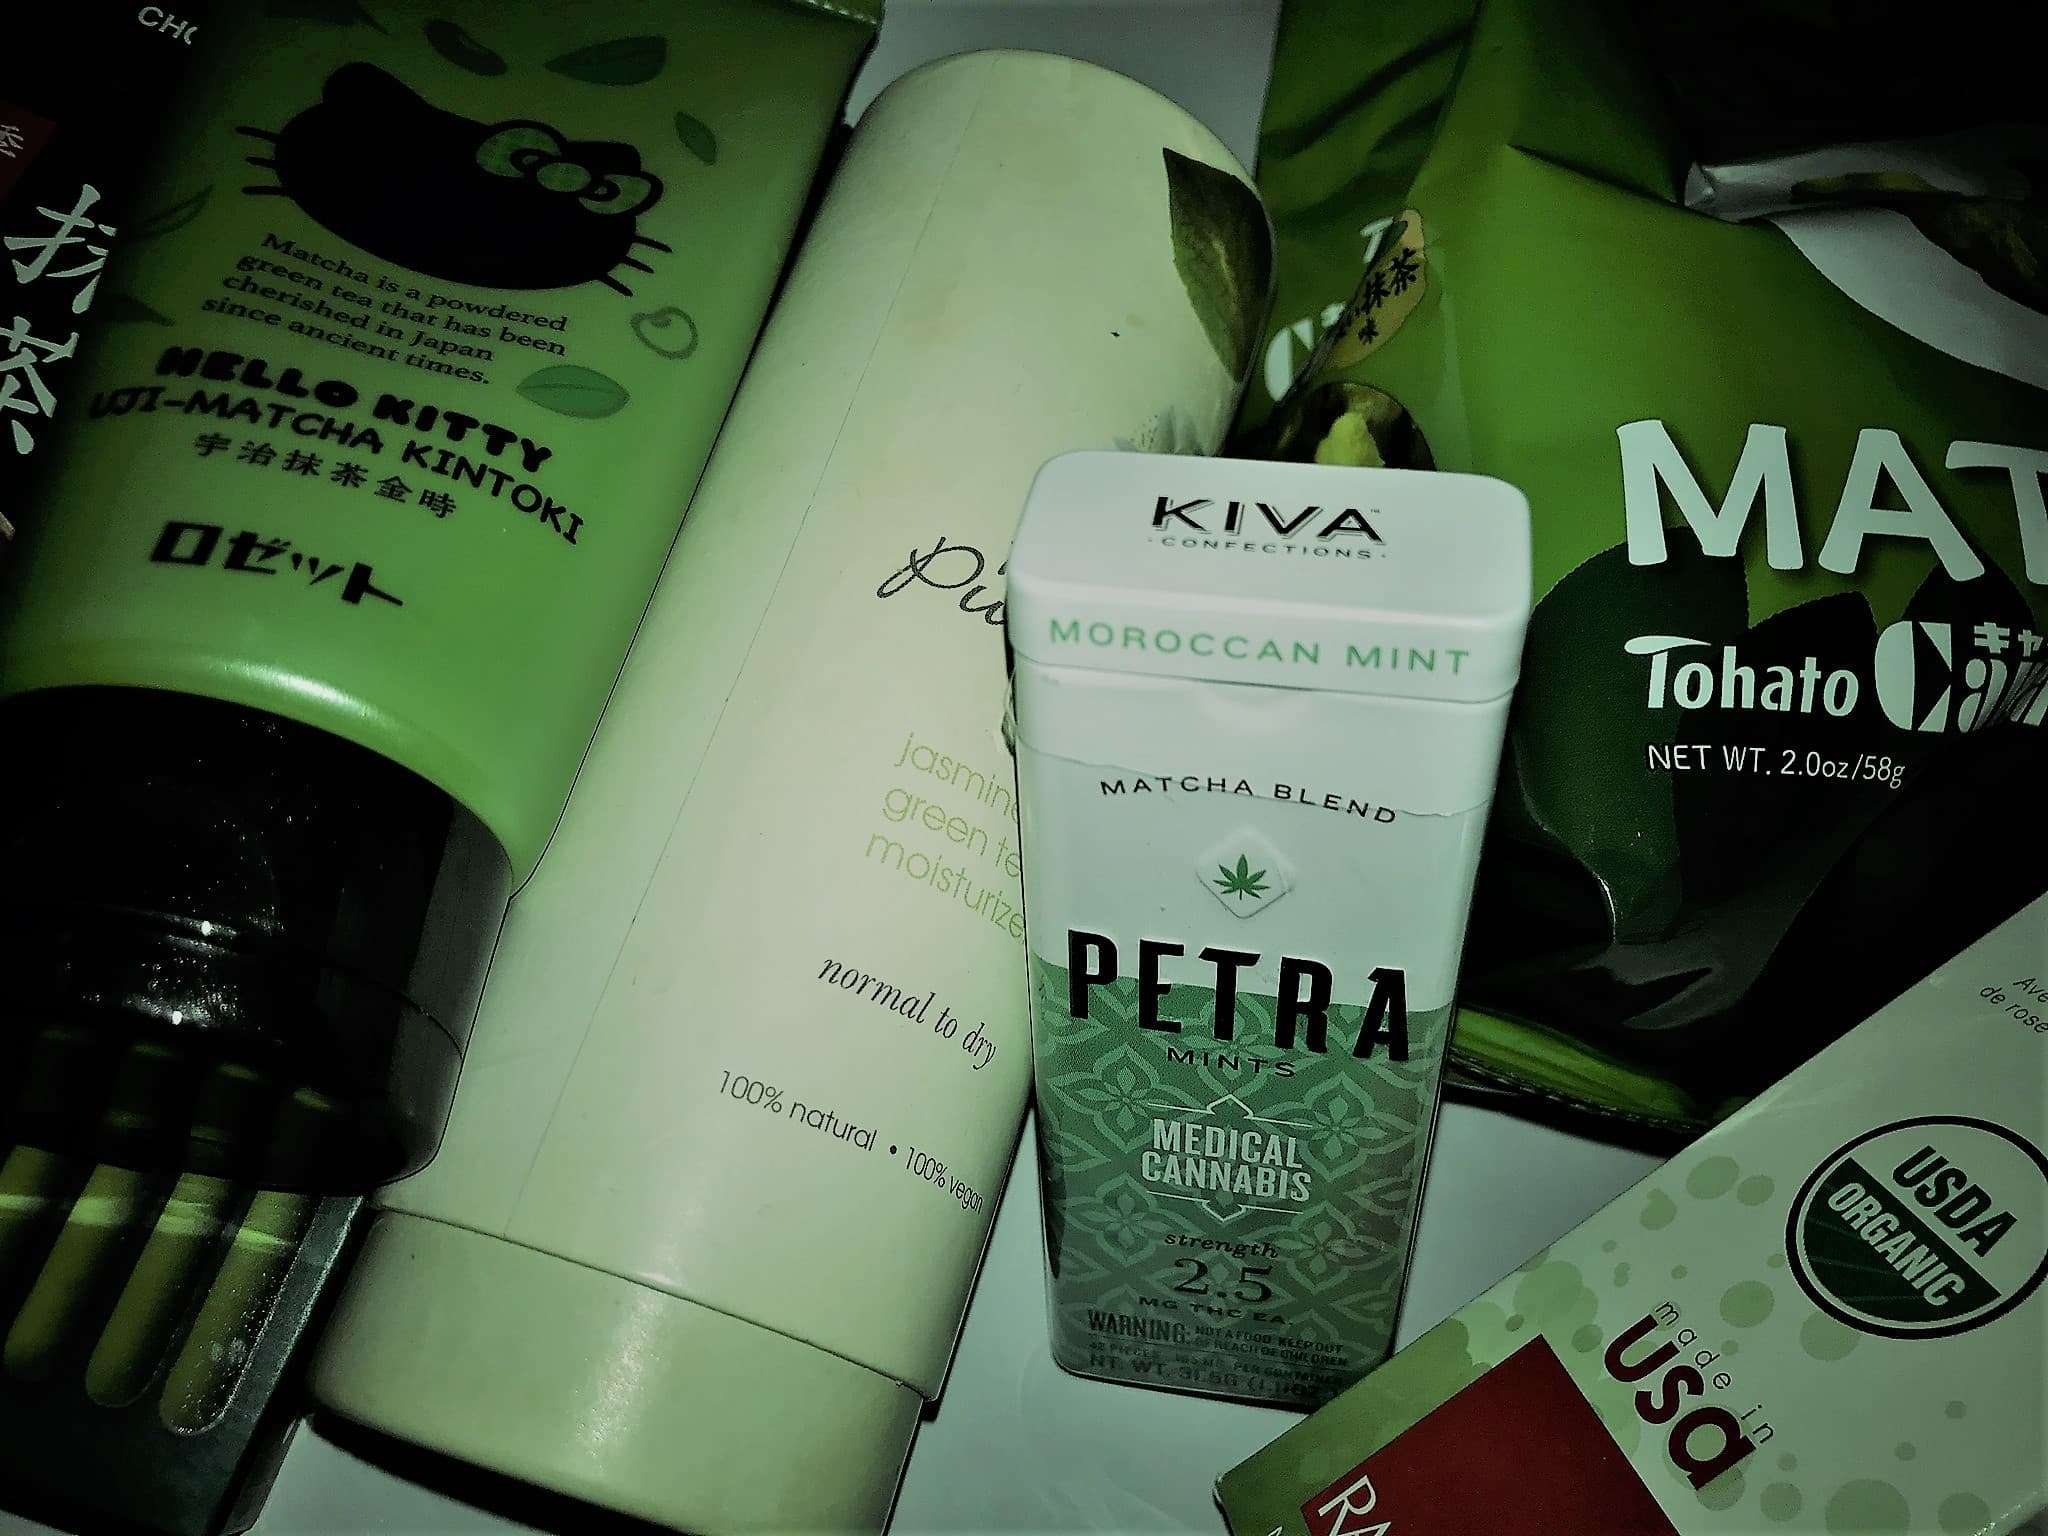 Photo of a pile of matcha-infused products